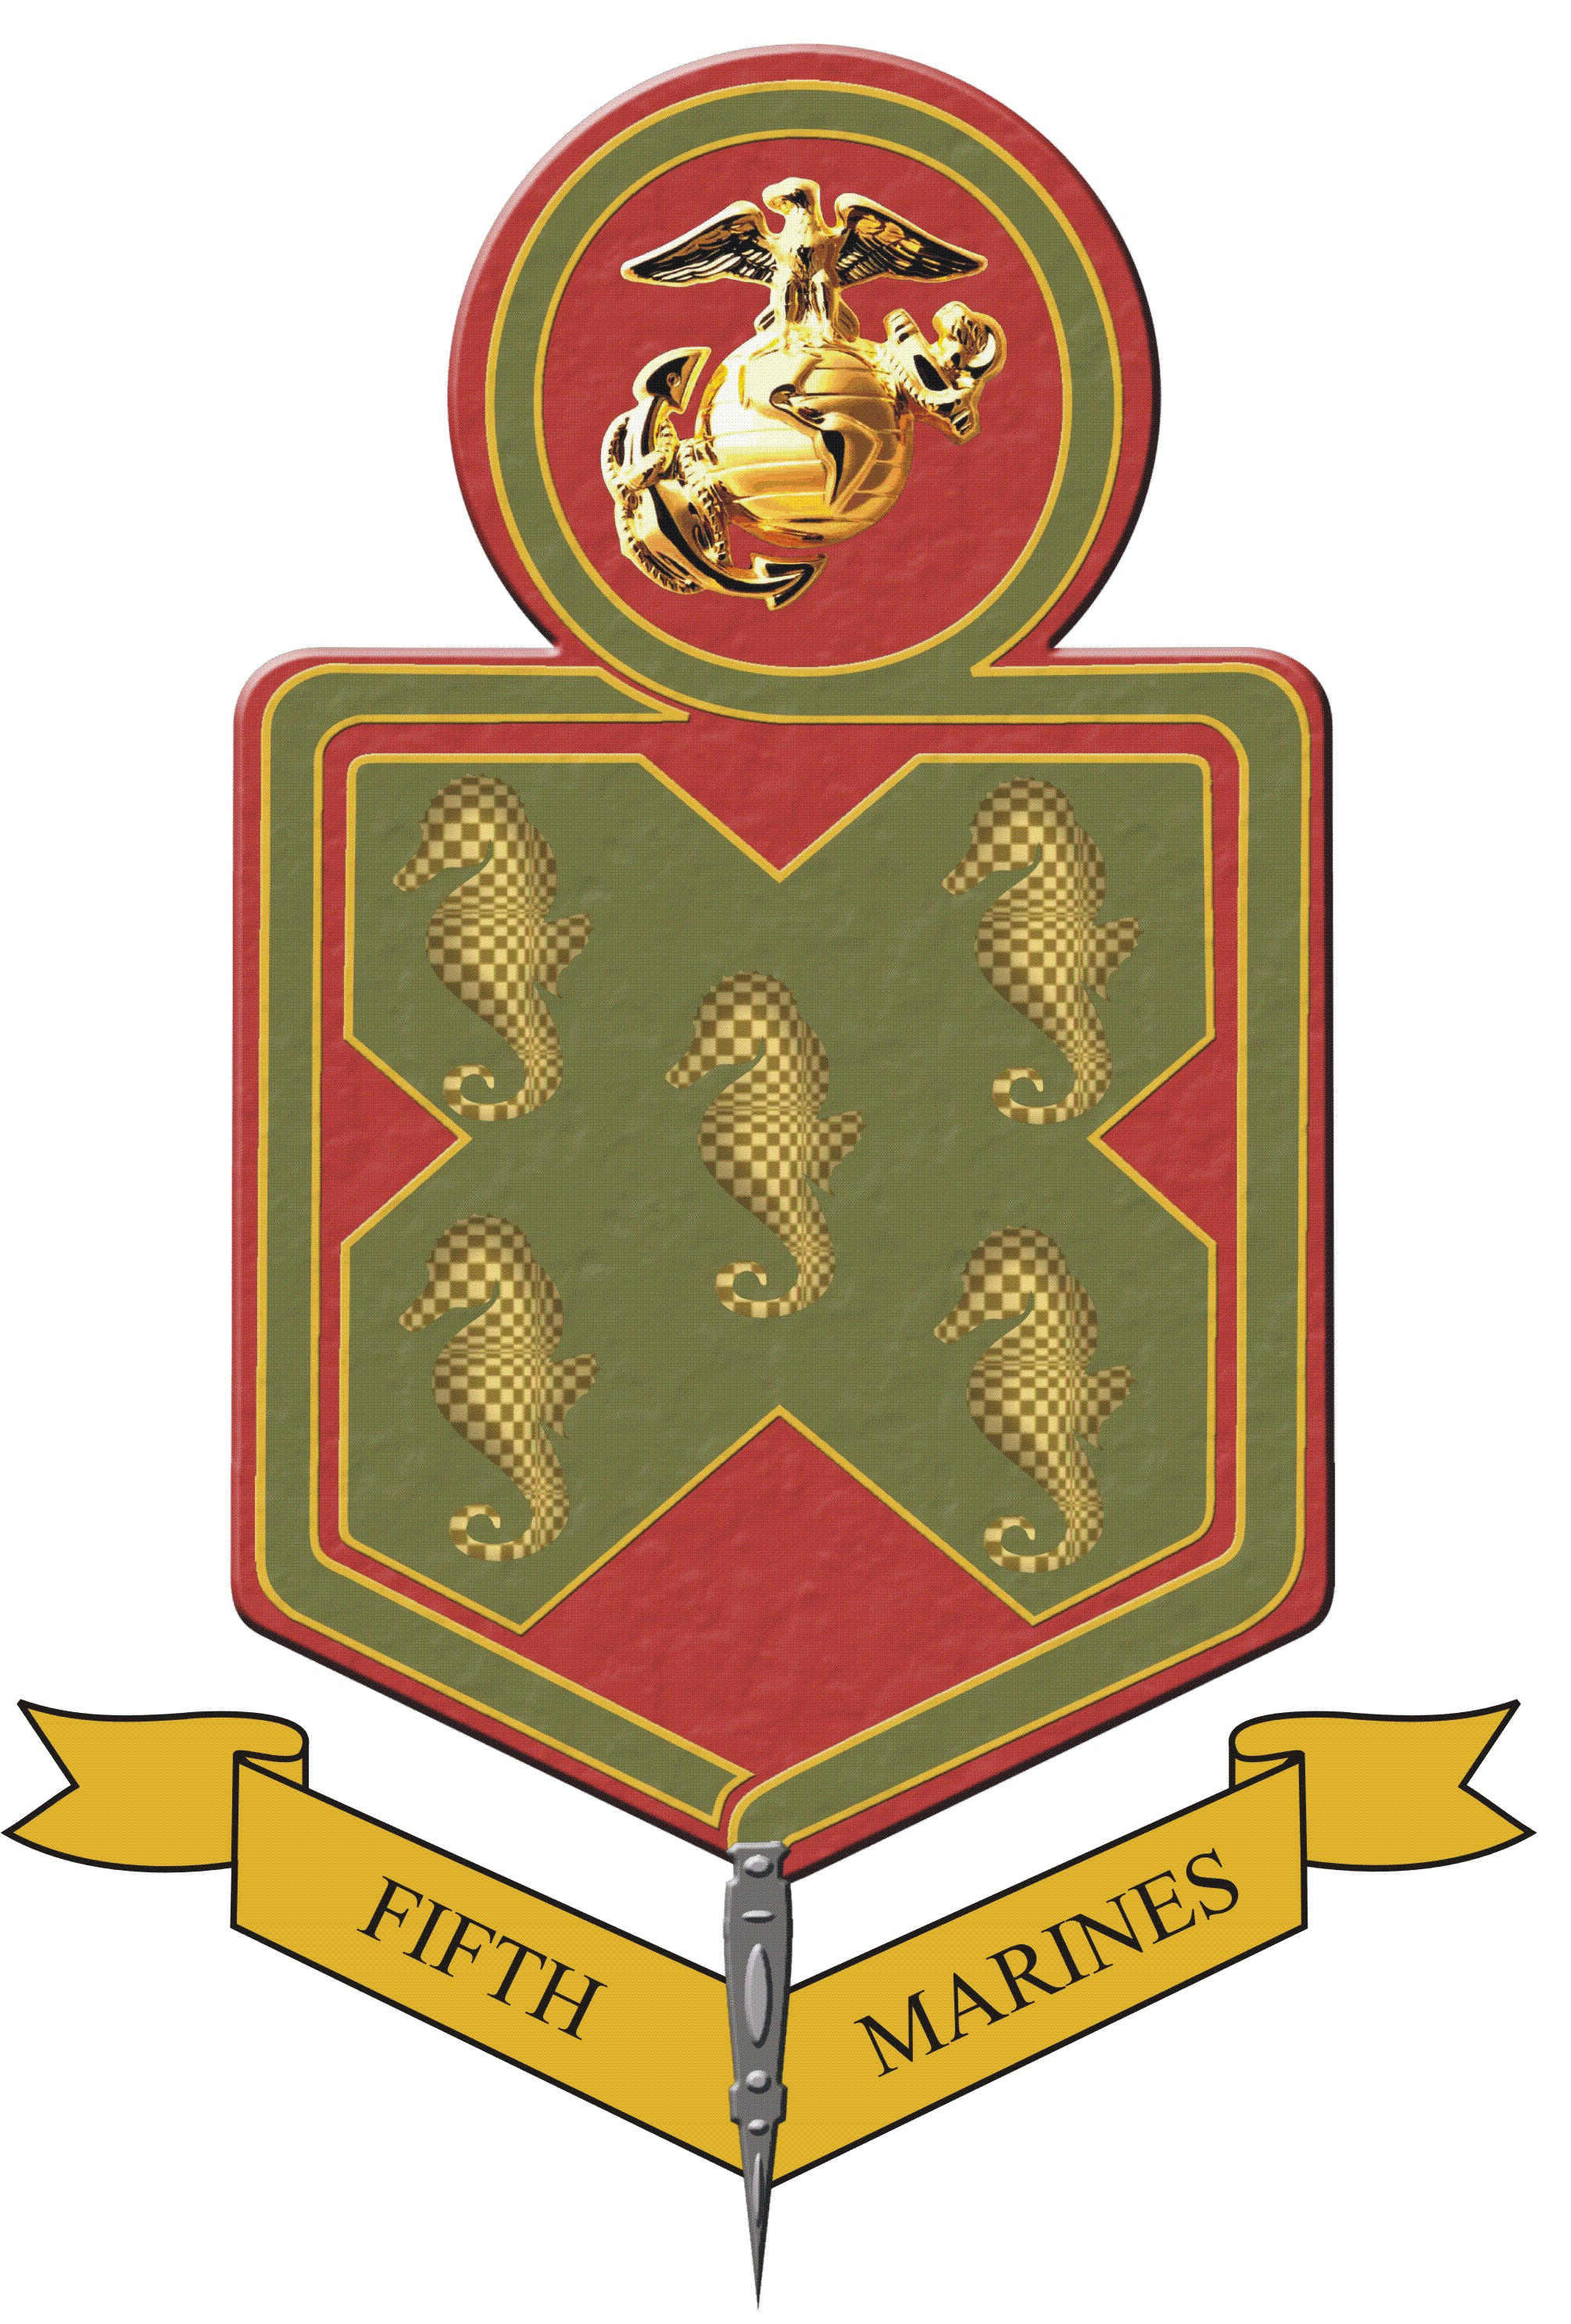 5th Marine Regiment (United States)